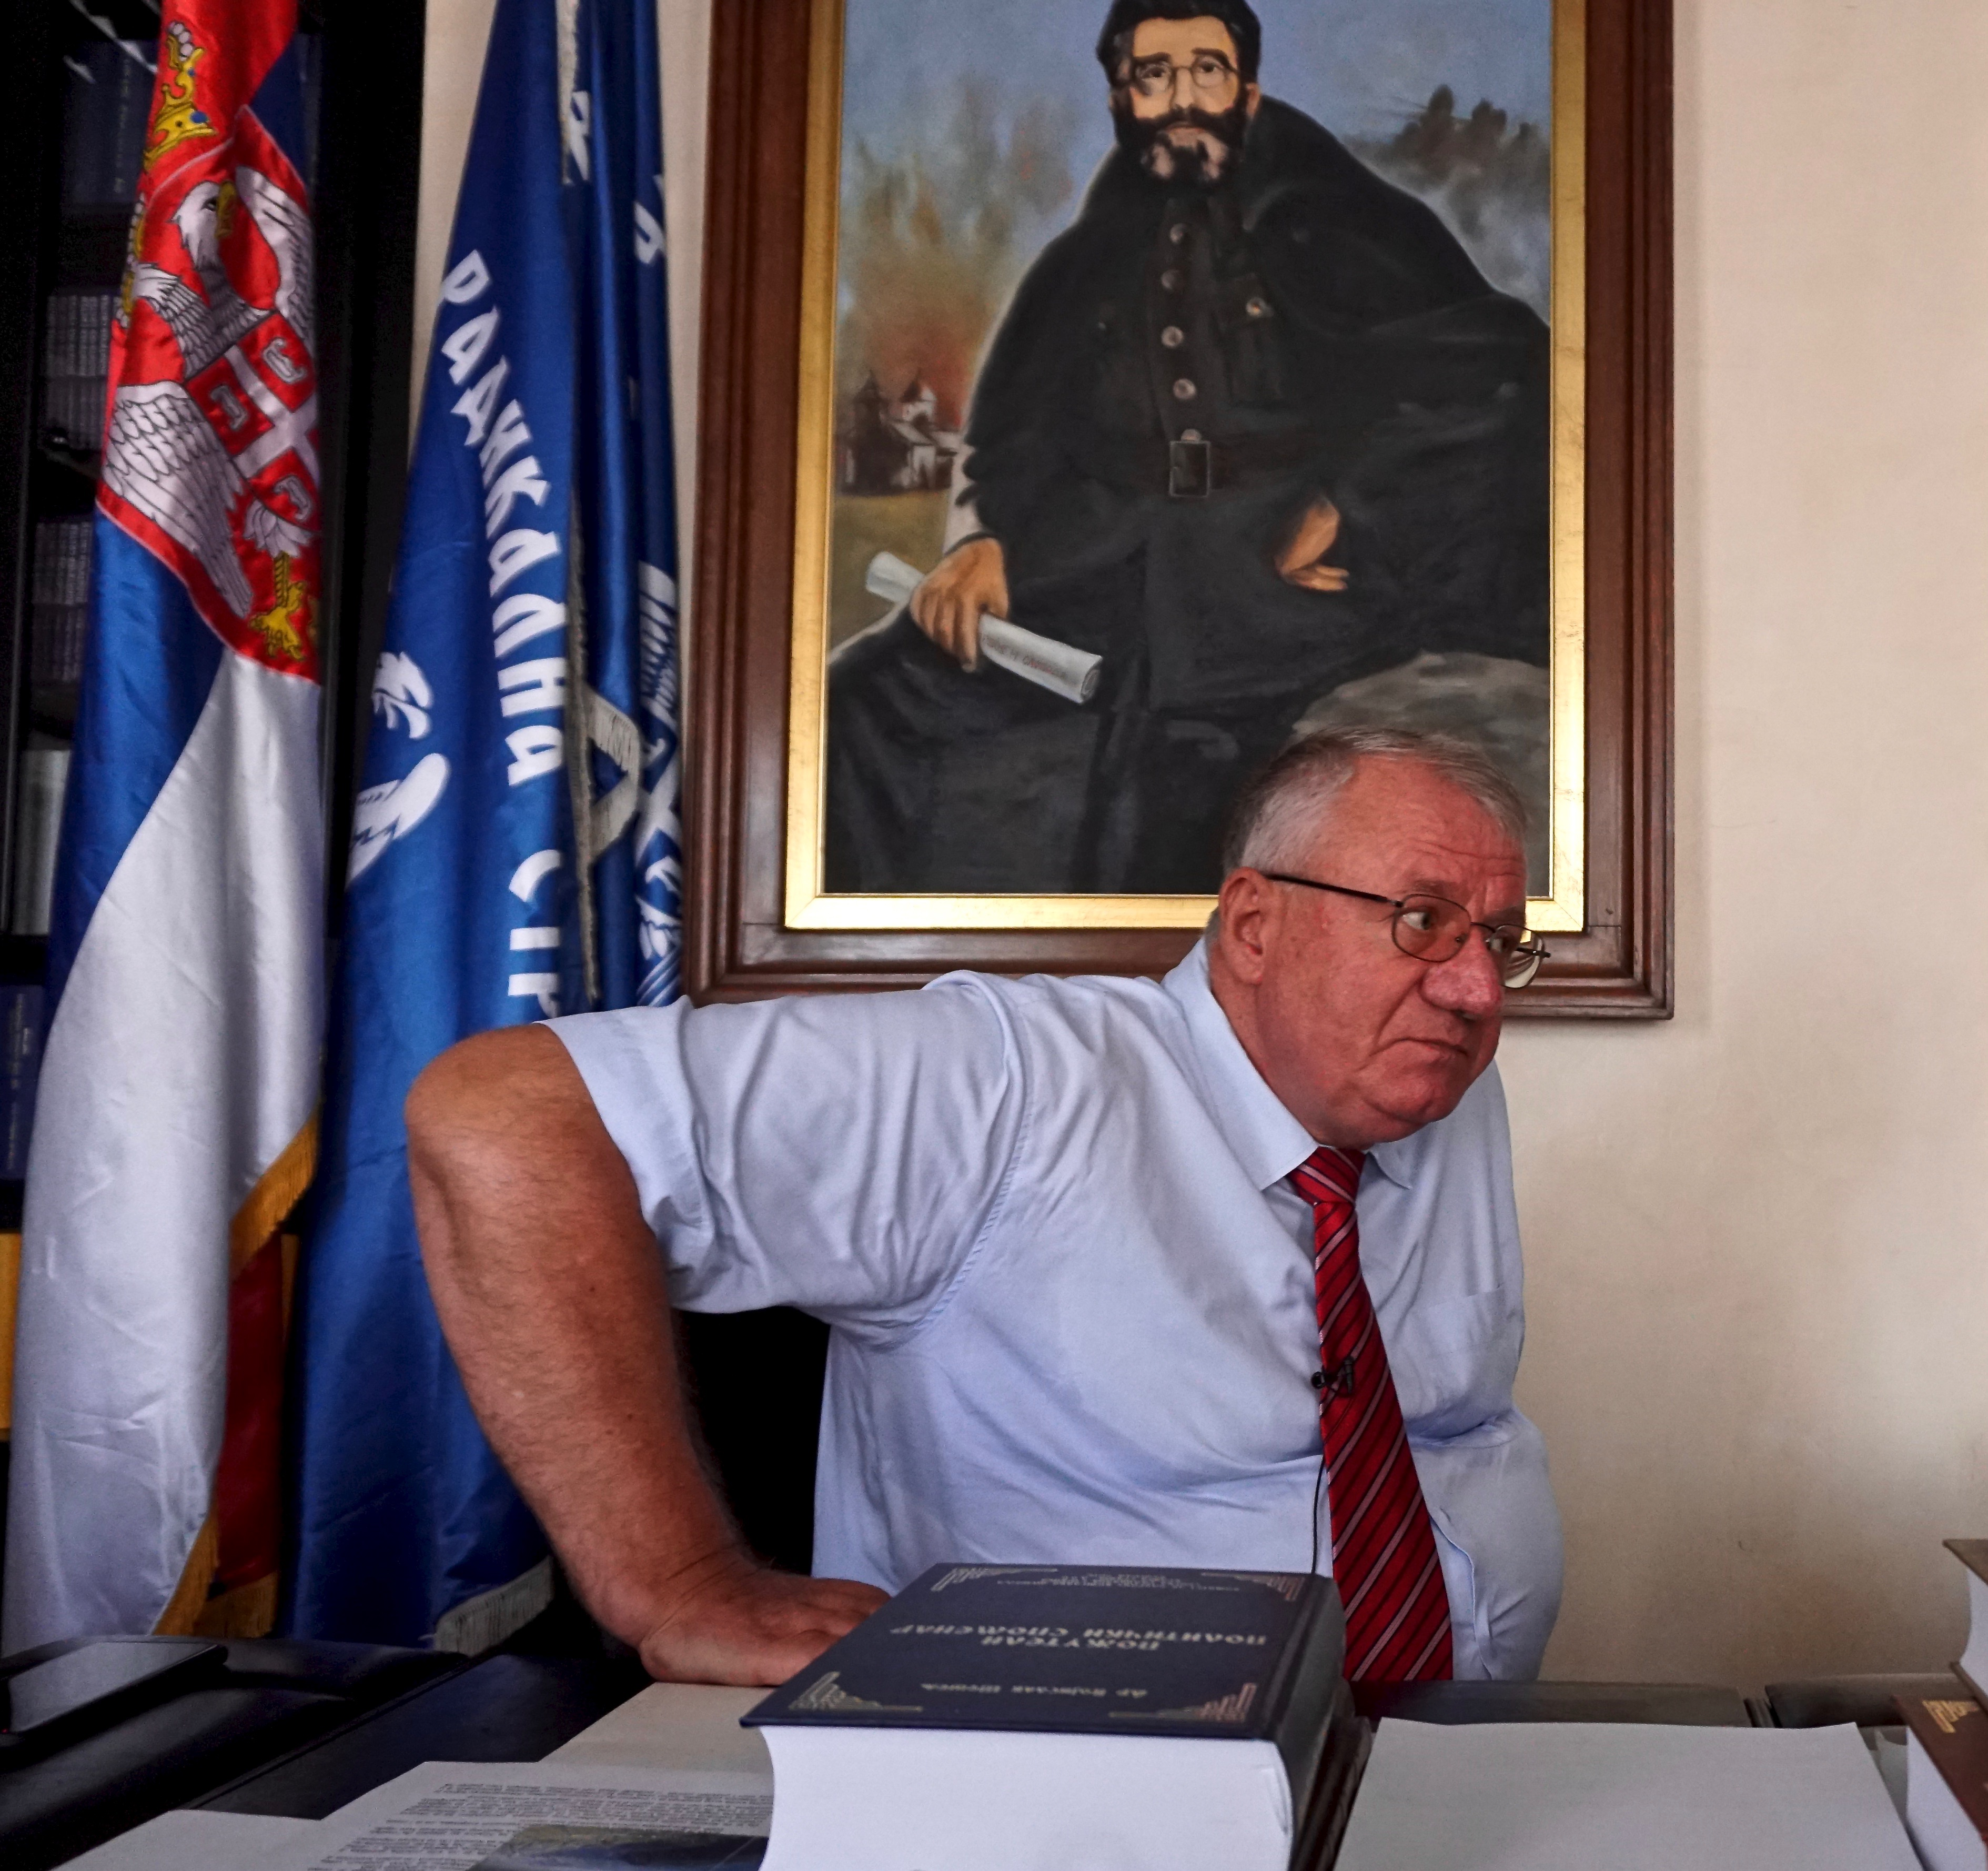 Serbia's main opposition leader Vojislav Šešelj is engaged on a monumental three-volume work proving that the 1995 Srebrenica massacre of more than 8,000 Bosniaks, mainly men and boys, wasn't an act of genocide by Serbs. He does admit it was a ...